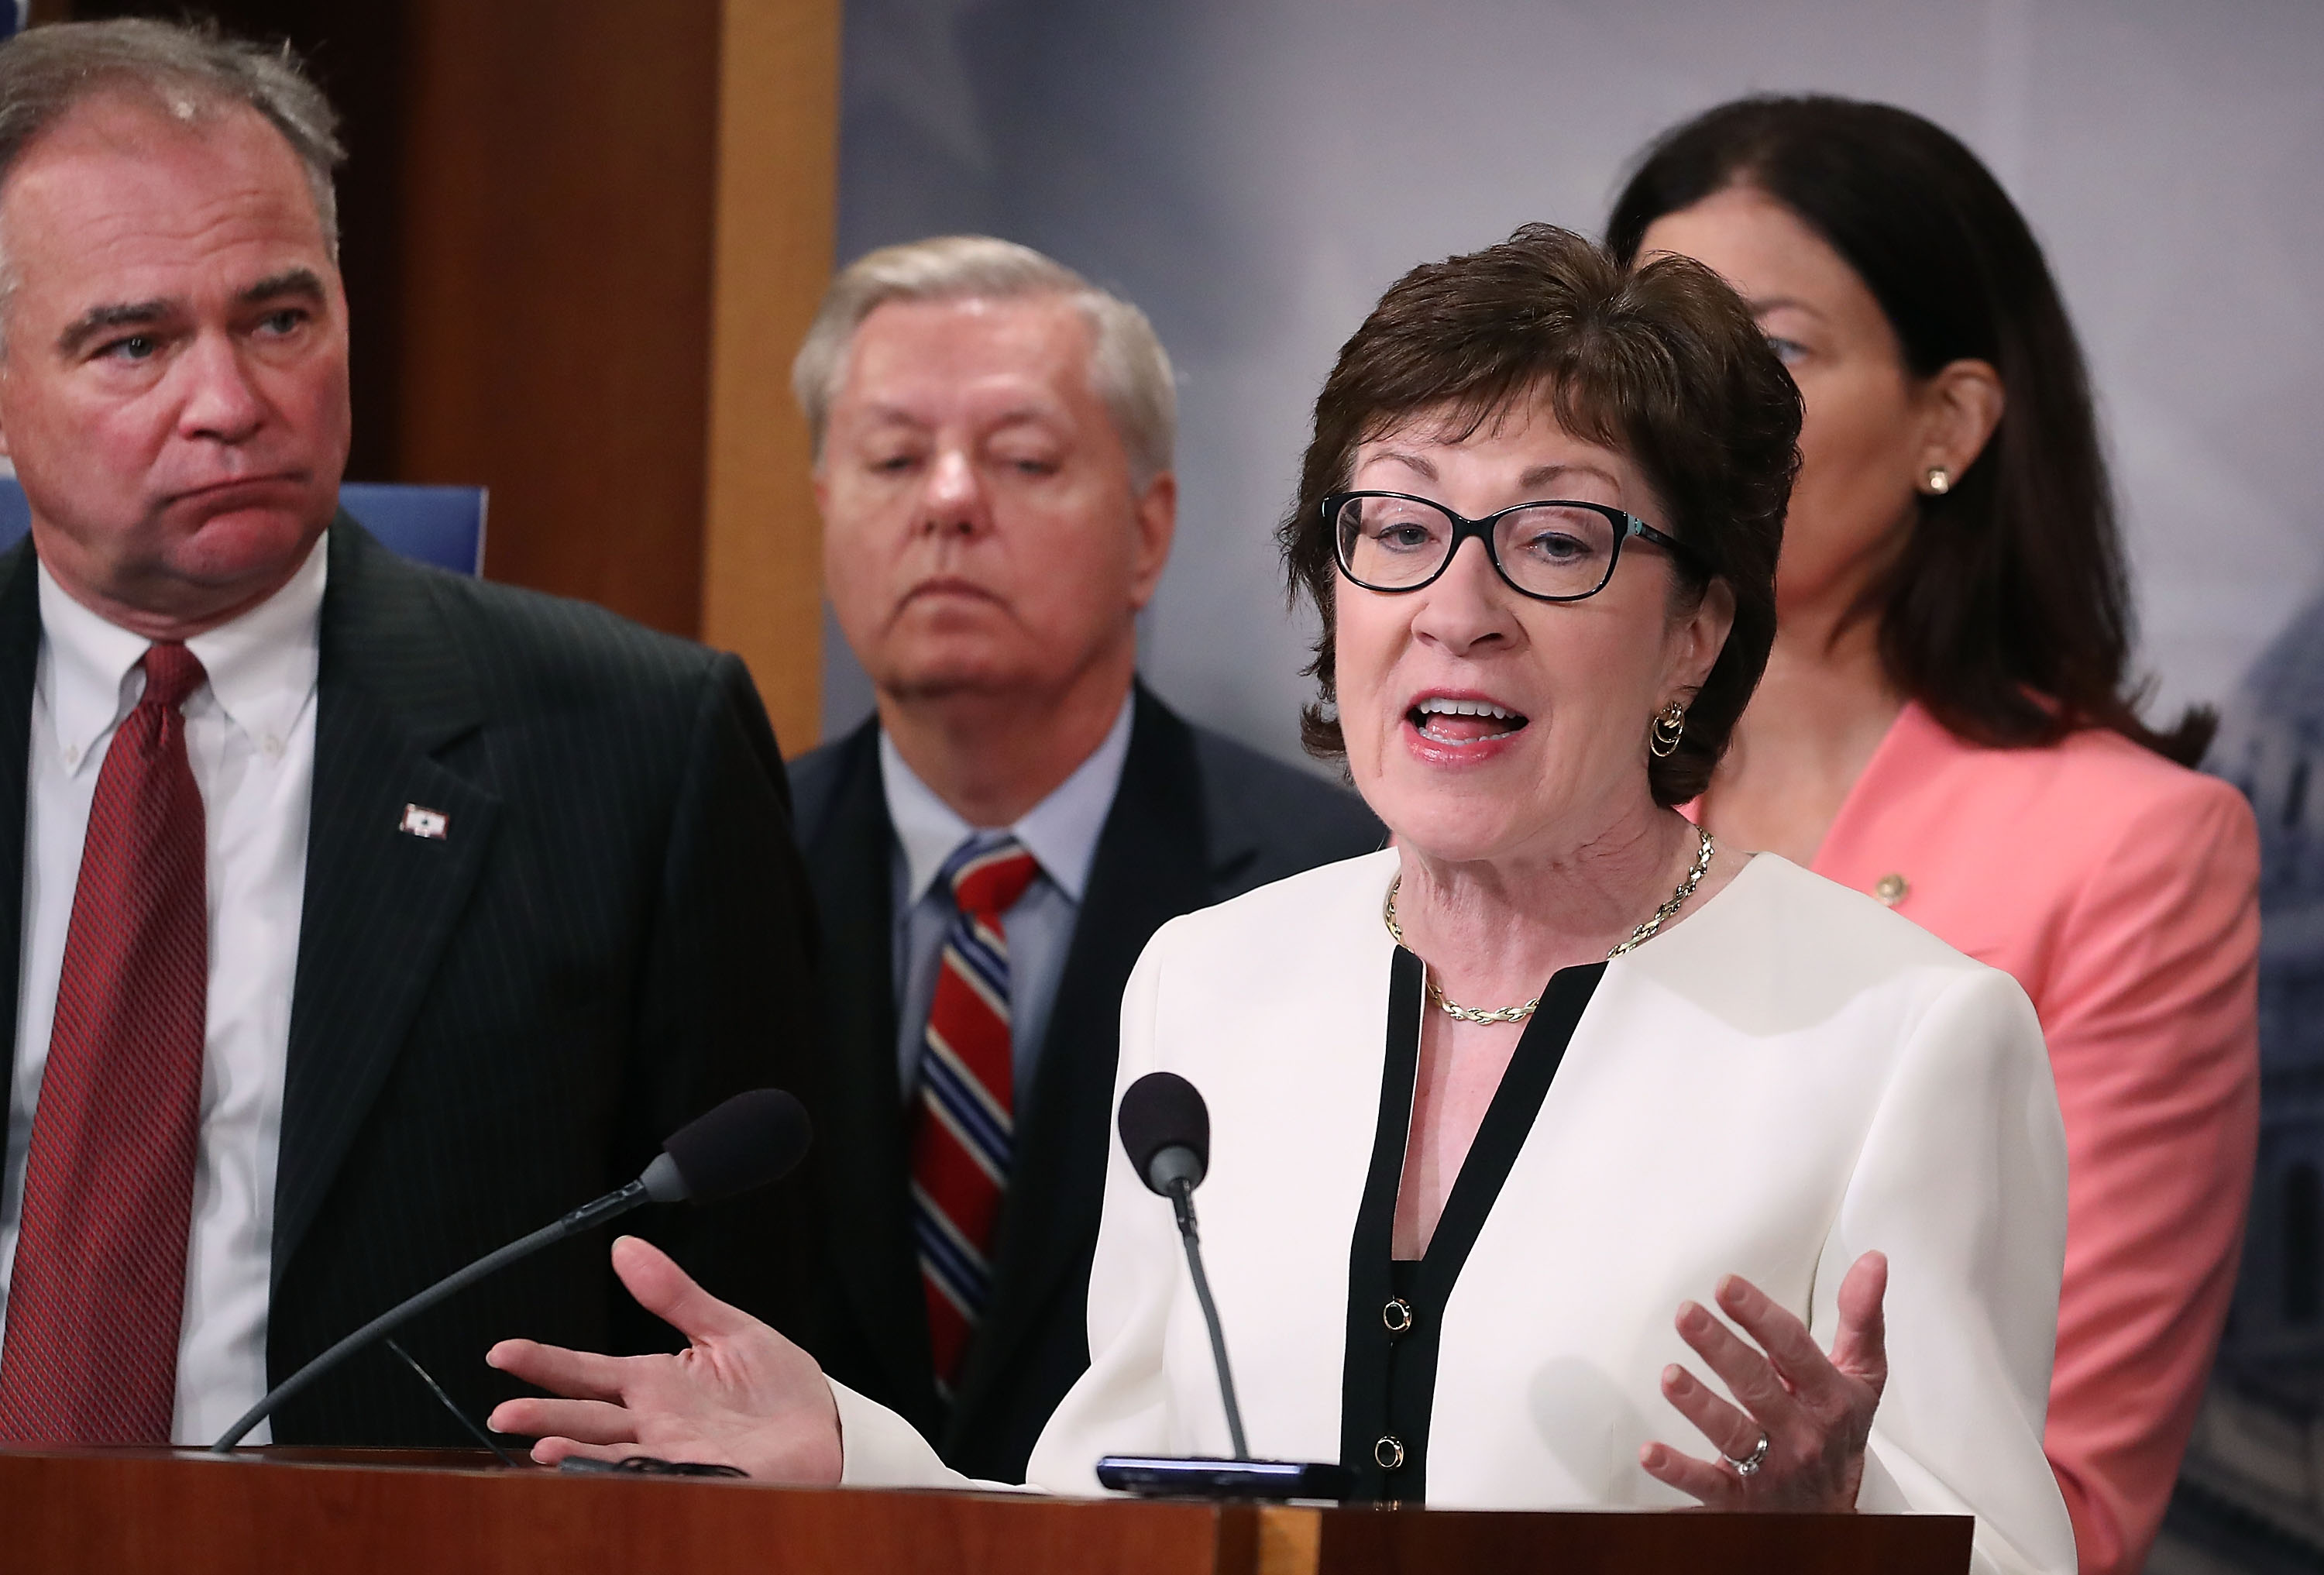 Maine Sen. Susan Collins speaks while flanked by bipartisan Senate colleagues during a news conference on Capitol Hill on June 21, 2016 in Washington, D.C.